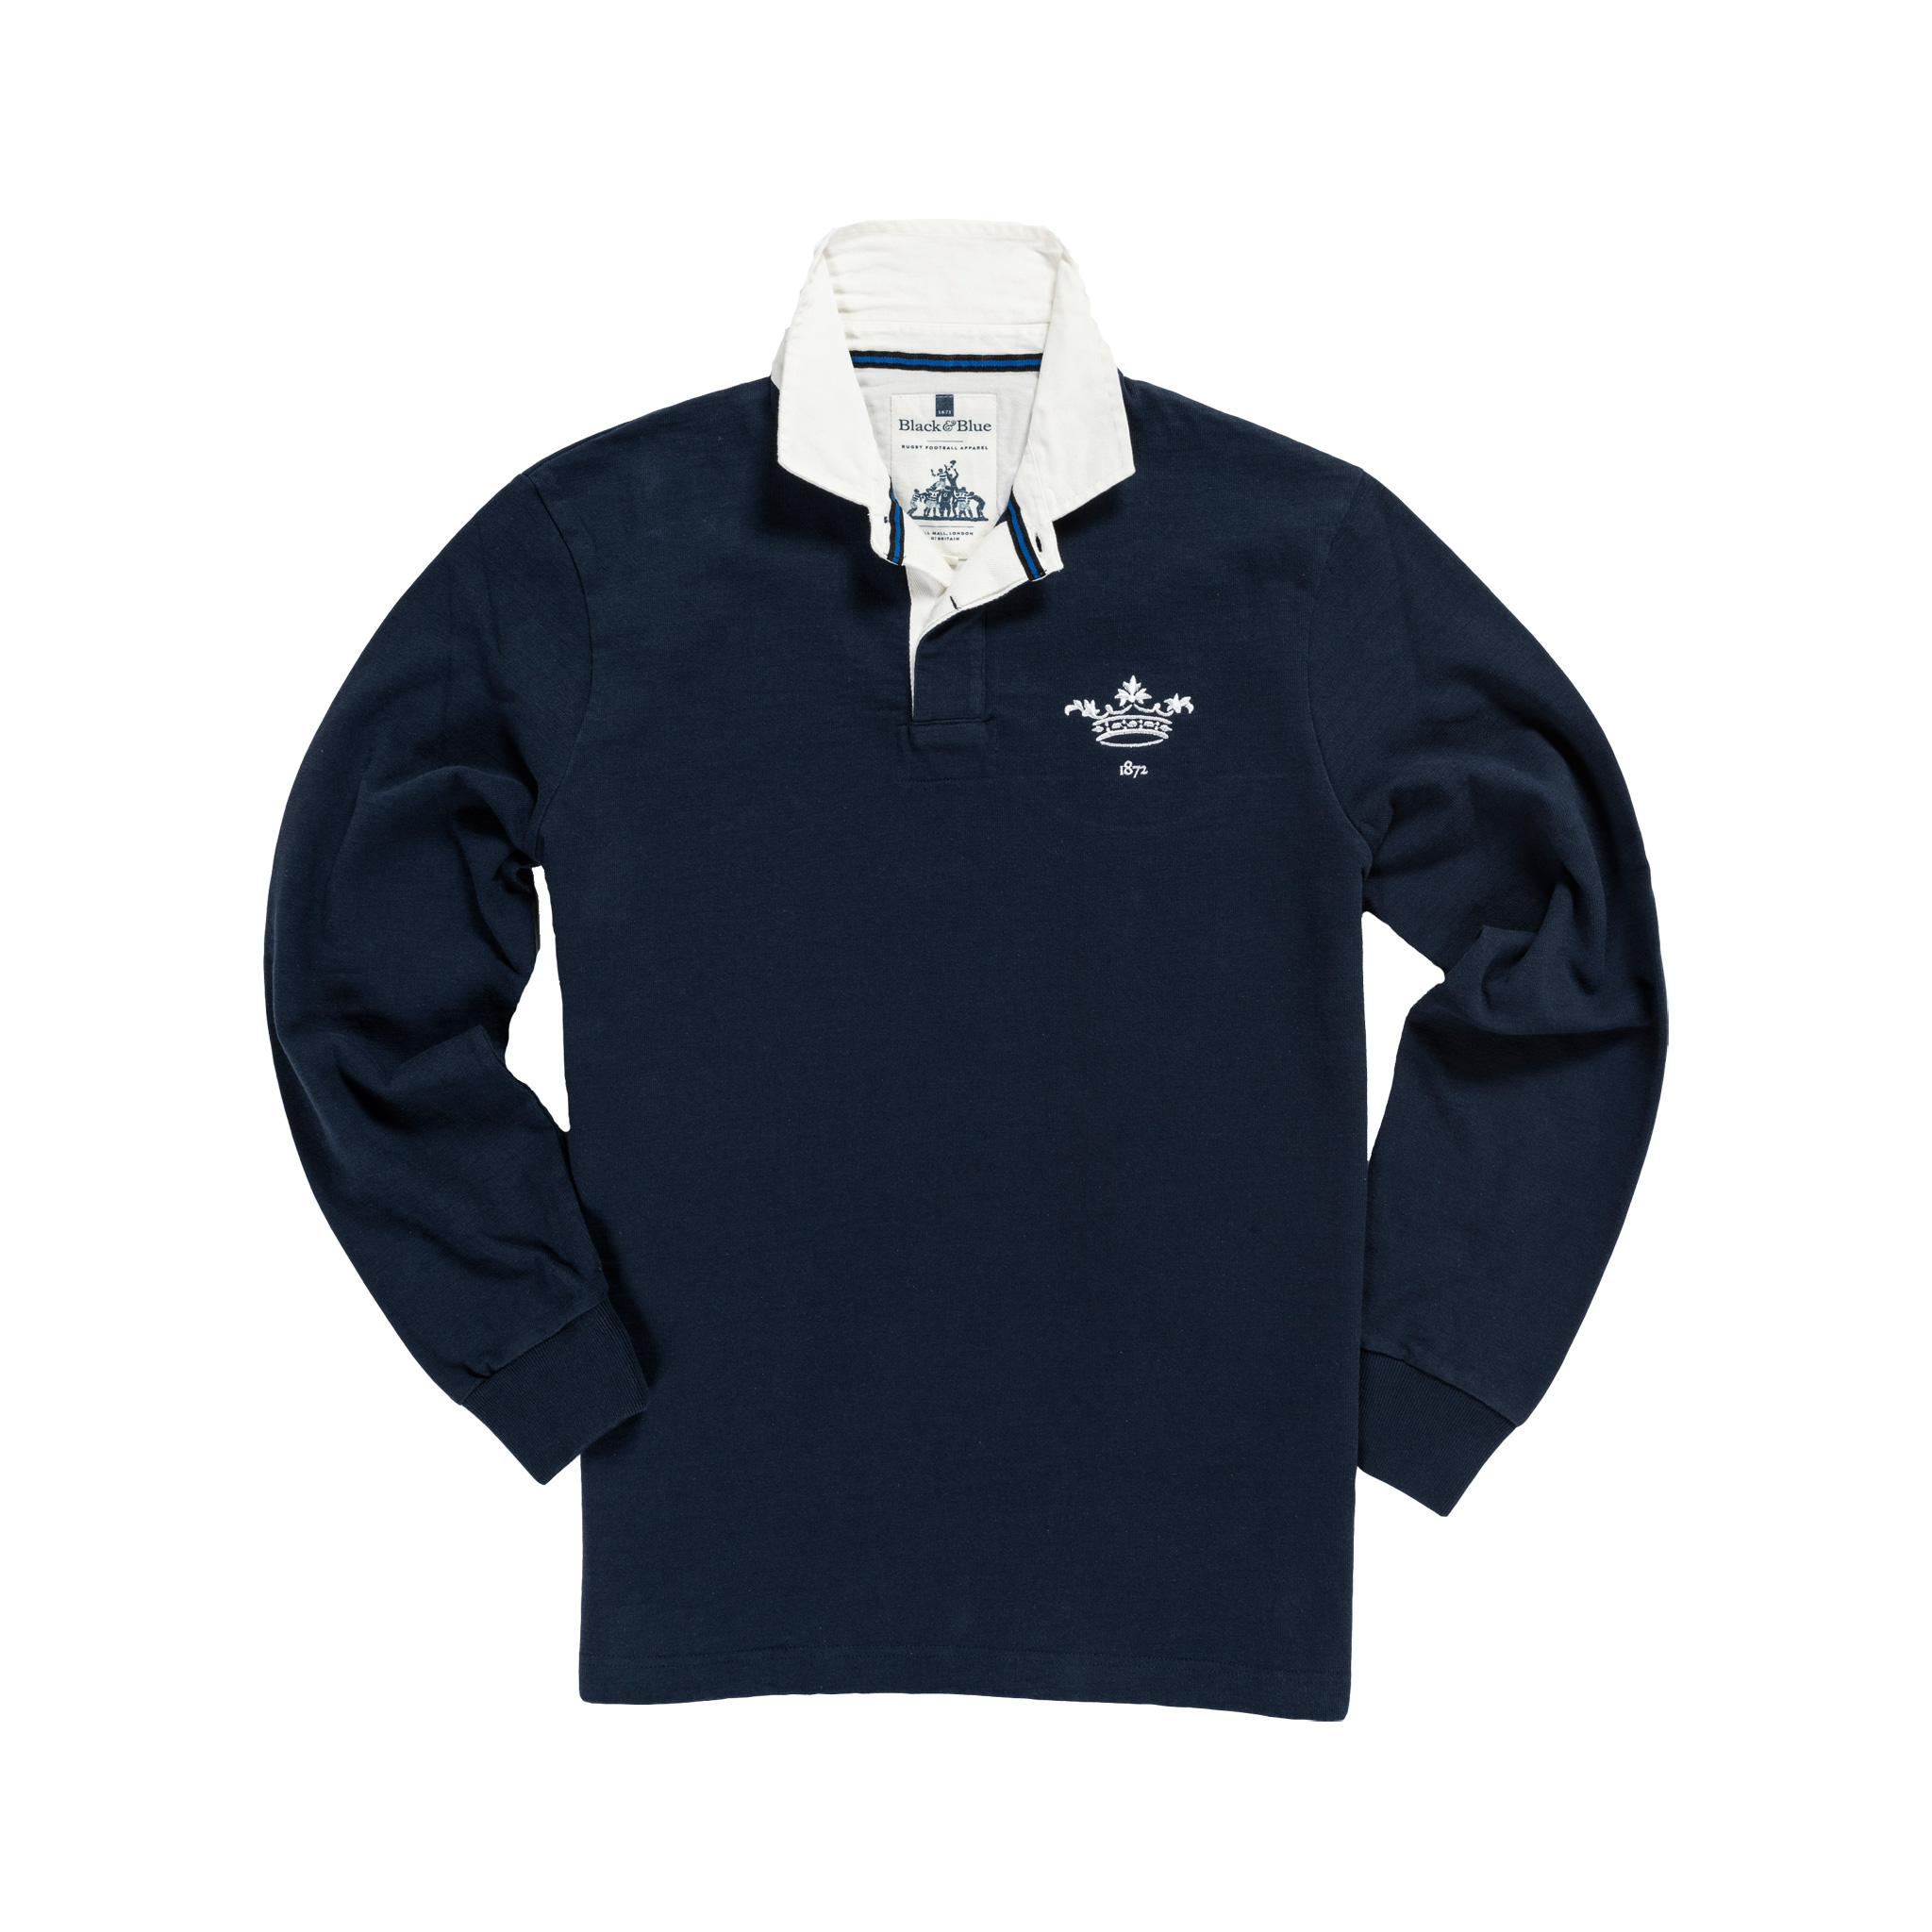 Oxford 1872 Vintage Rugby Shirt